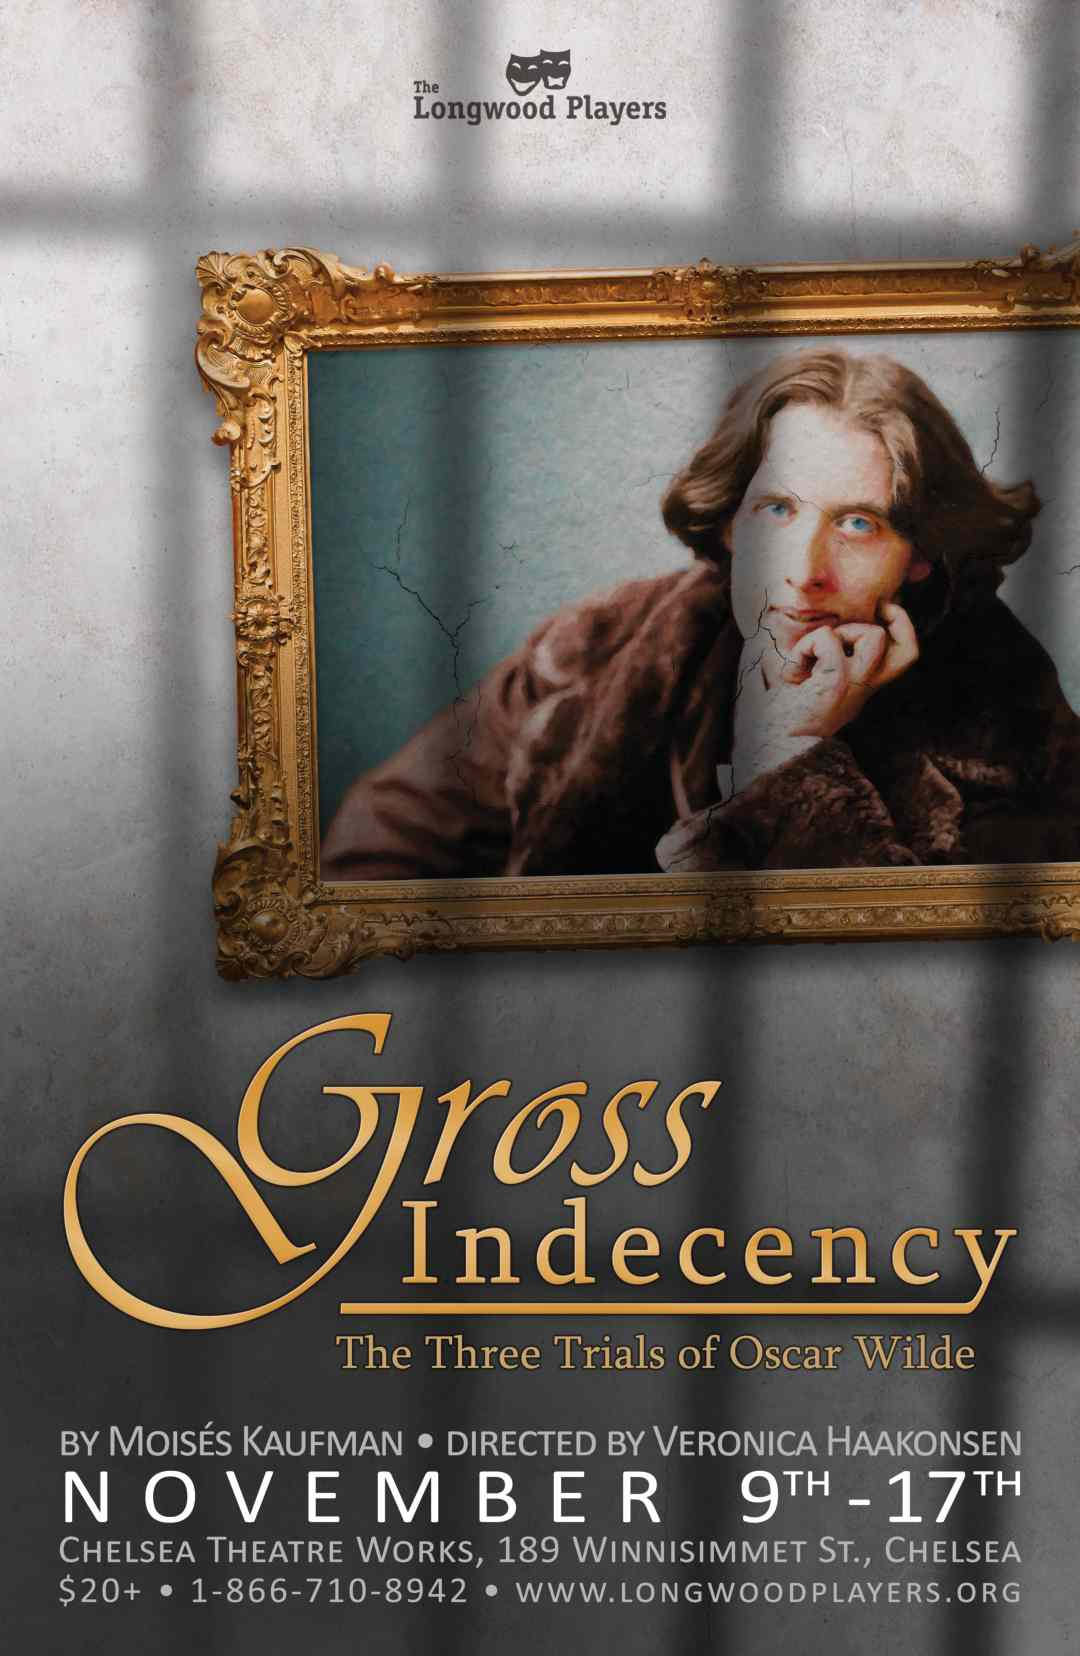 Poster for Gross Indecency: The Three Trials of Oscar Wilde